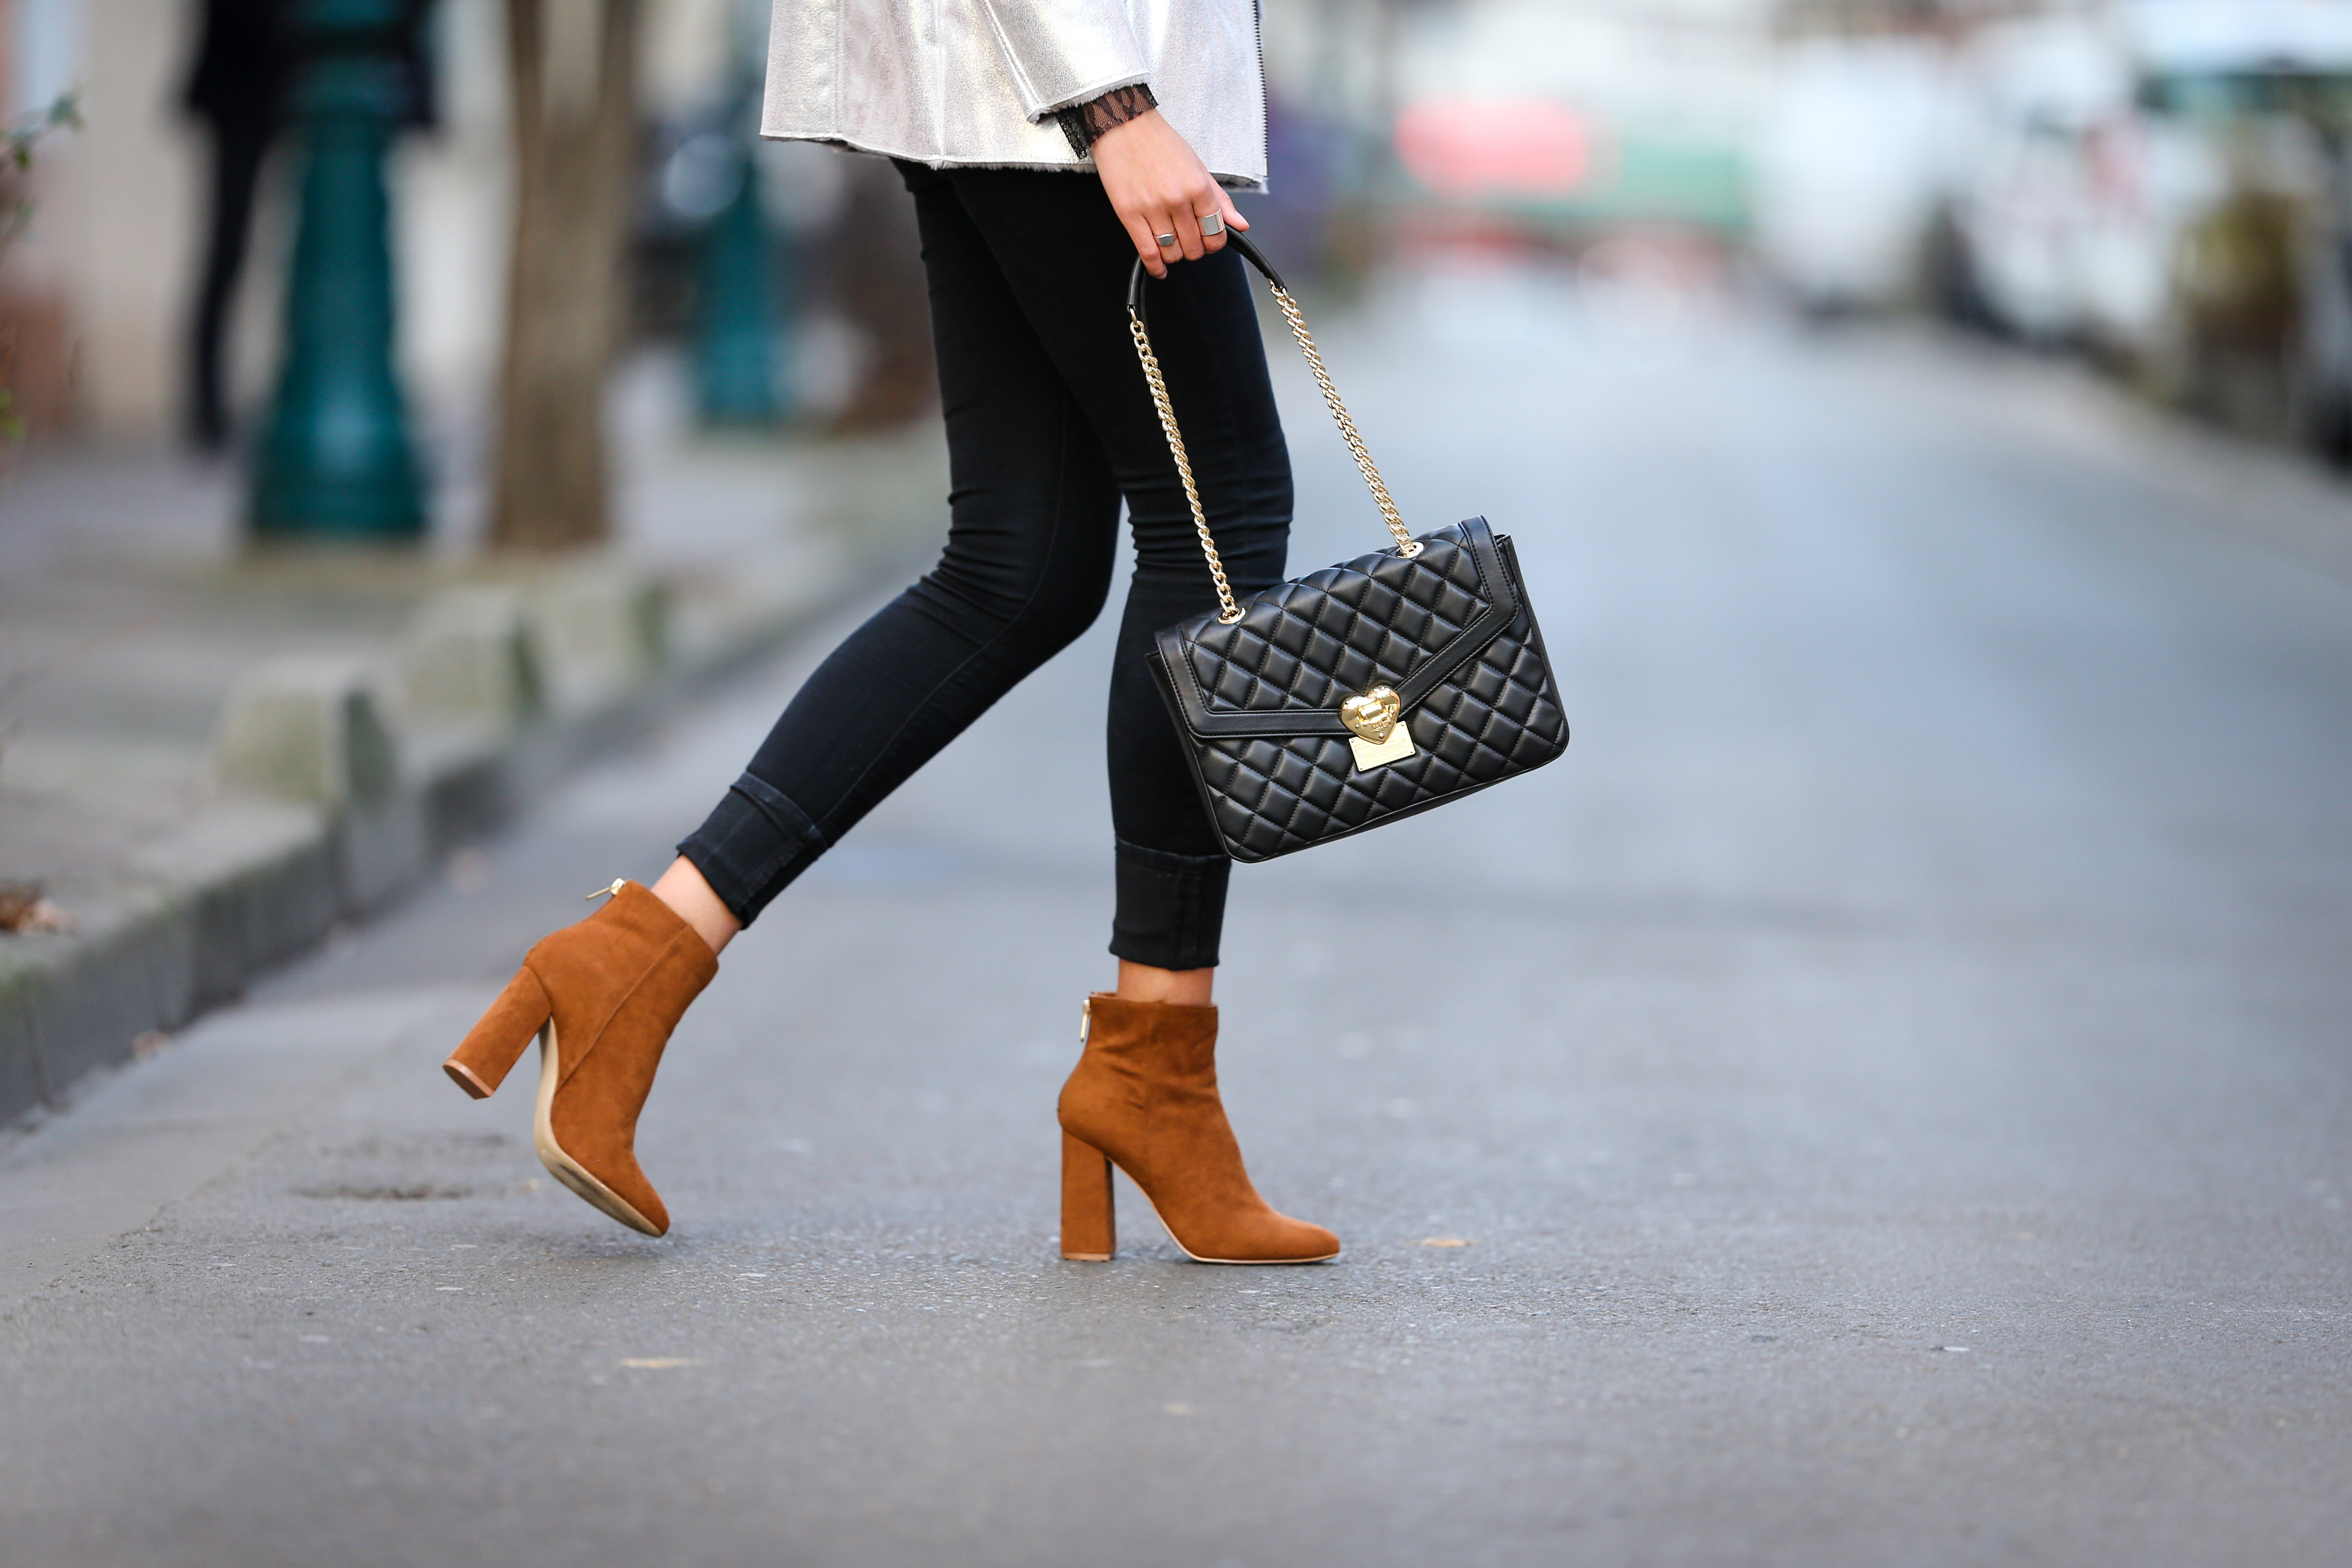 PARIS, FRANCE - DECEMBER 08: Syana Laniyan, fashion and life style blogger @syanafromparis, is wearing Just Fab brown suede shoes, an Asos silver coat with faux fur, an Asos black top with lace, Asos black pants, and a Moschino black bag, on December 8, 2016 in Paris, France. (Photo by Edward Berthelot/Getty Images)